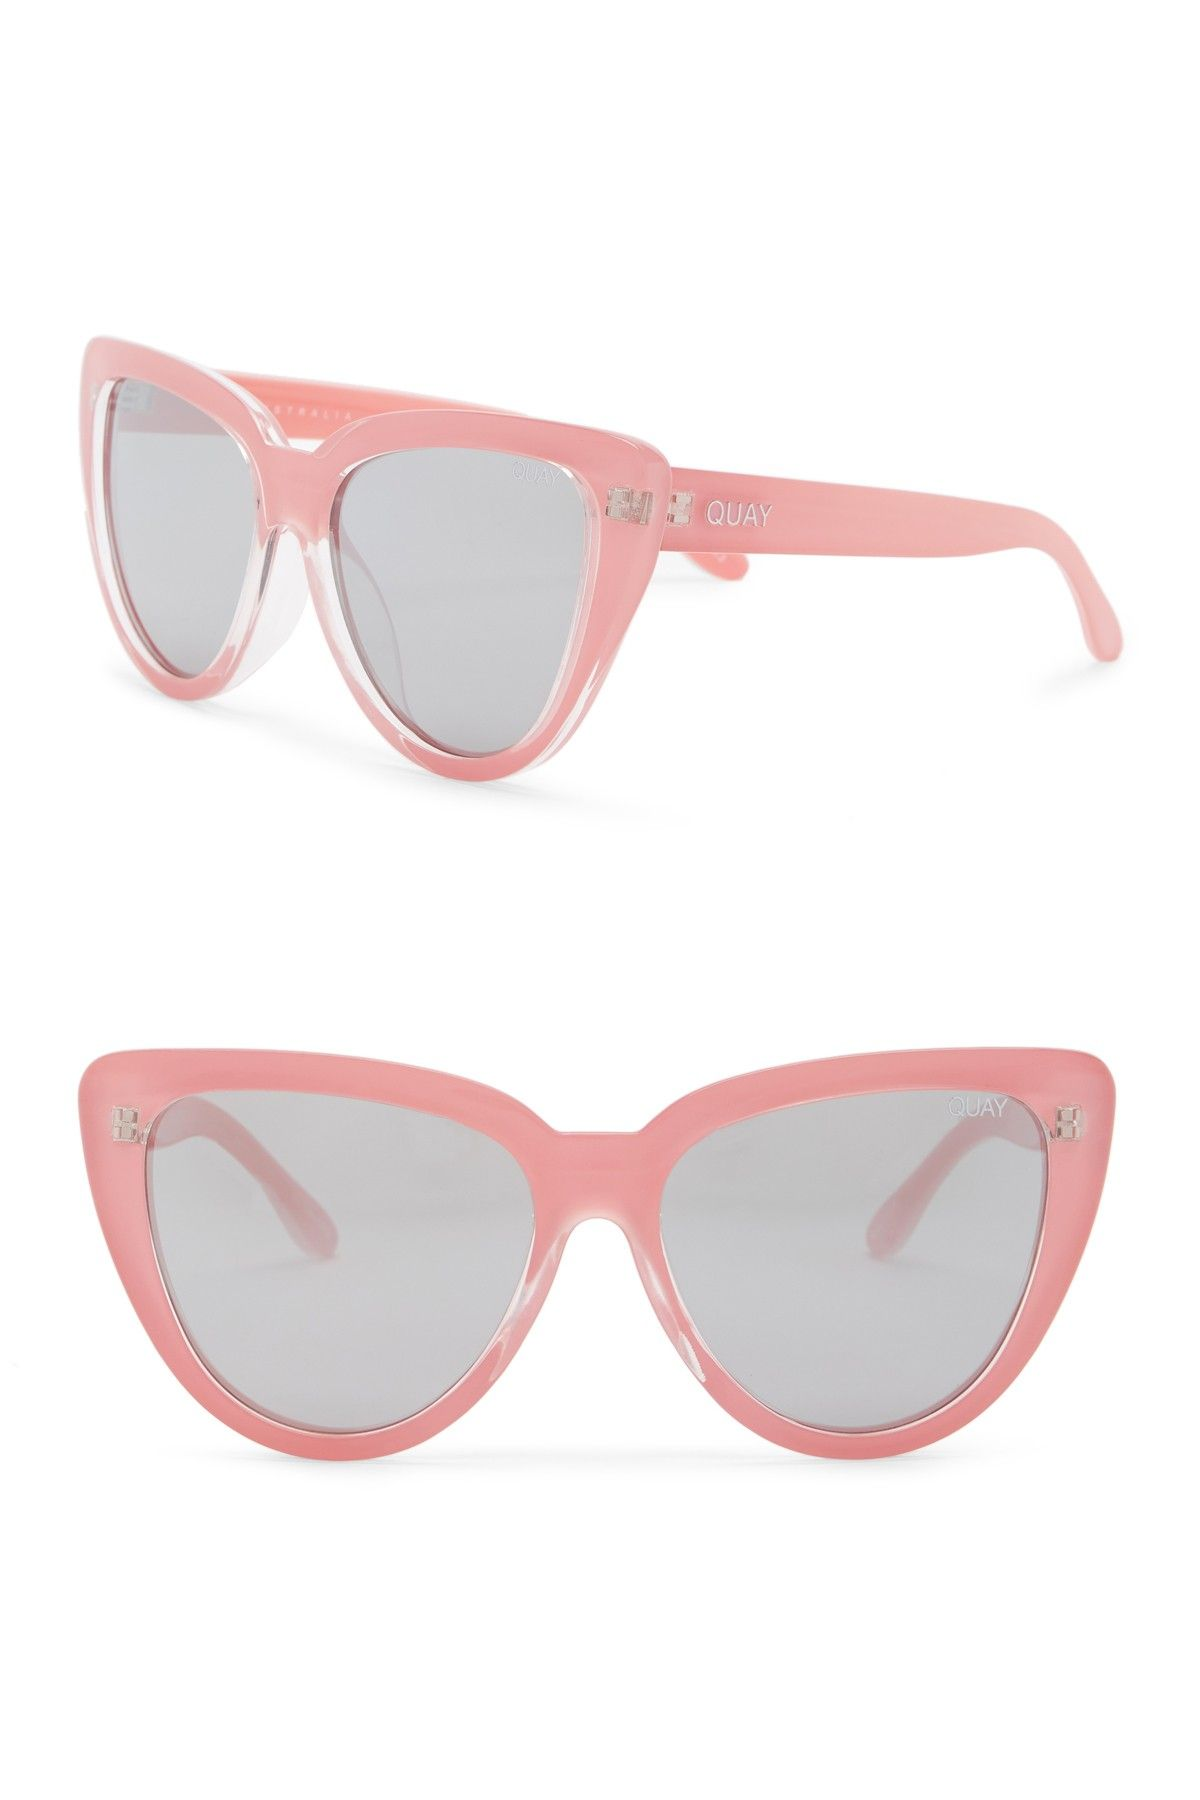 9edfaeb61b65a1 QUAY AUSTRALIA - Women s 60mm Stray Cat Cat Eye Sunglasses is now 50% off.